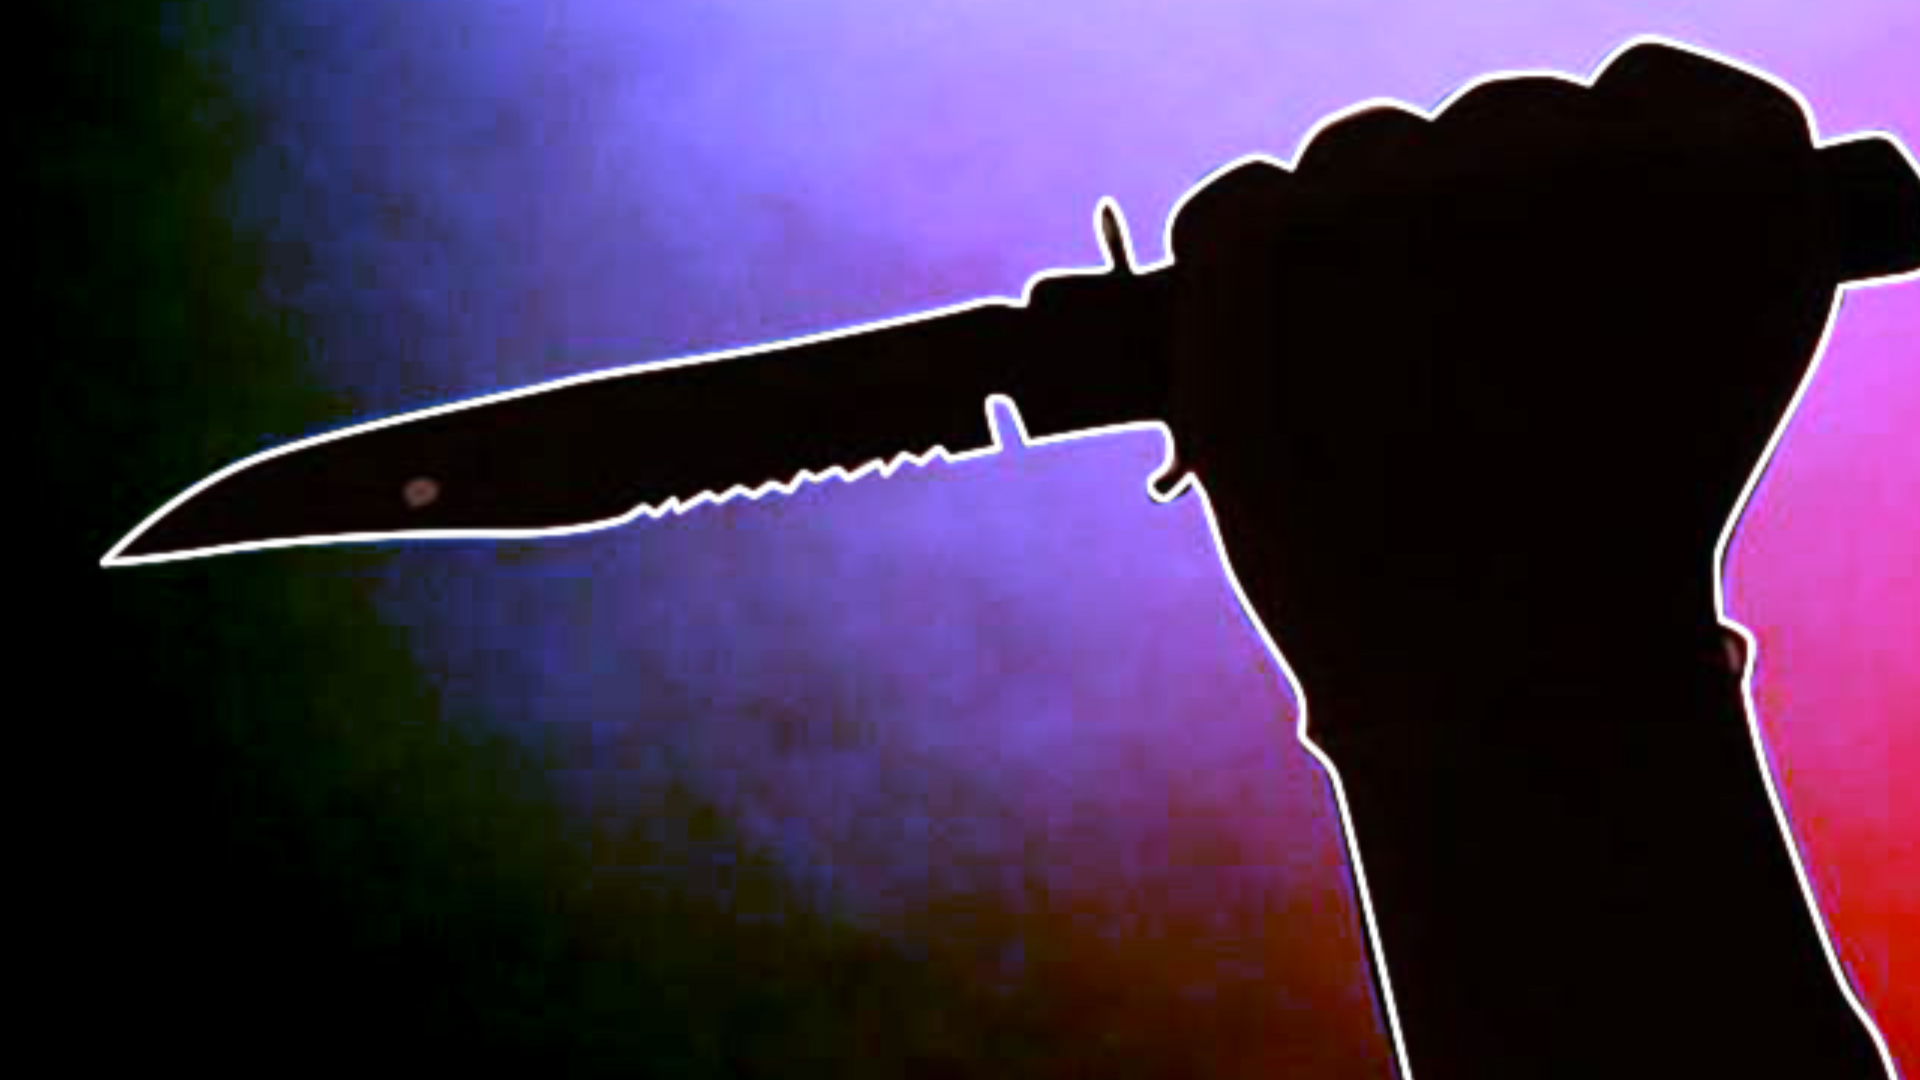 #gruesome:  Woman stabs daughter with pencil, bites her for failing to answer in online class